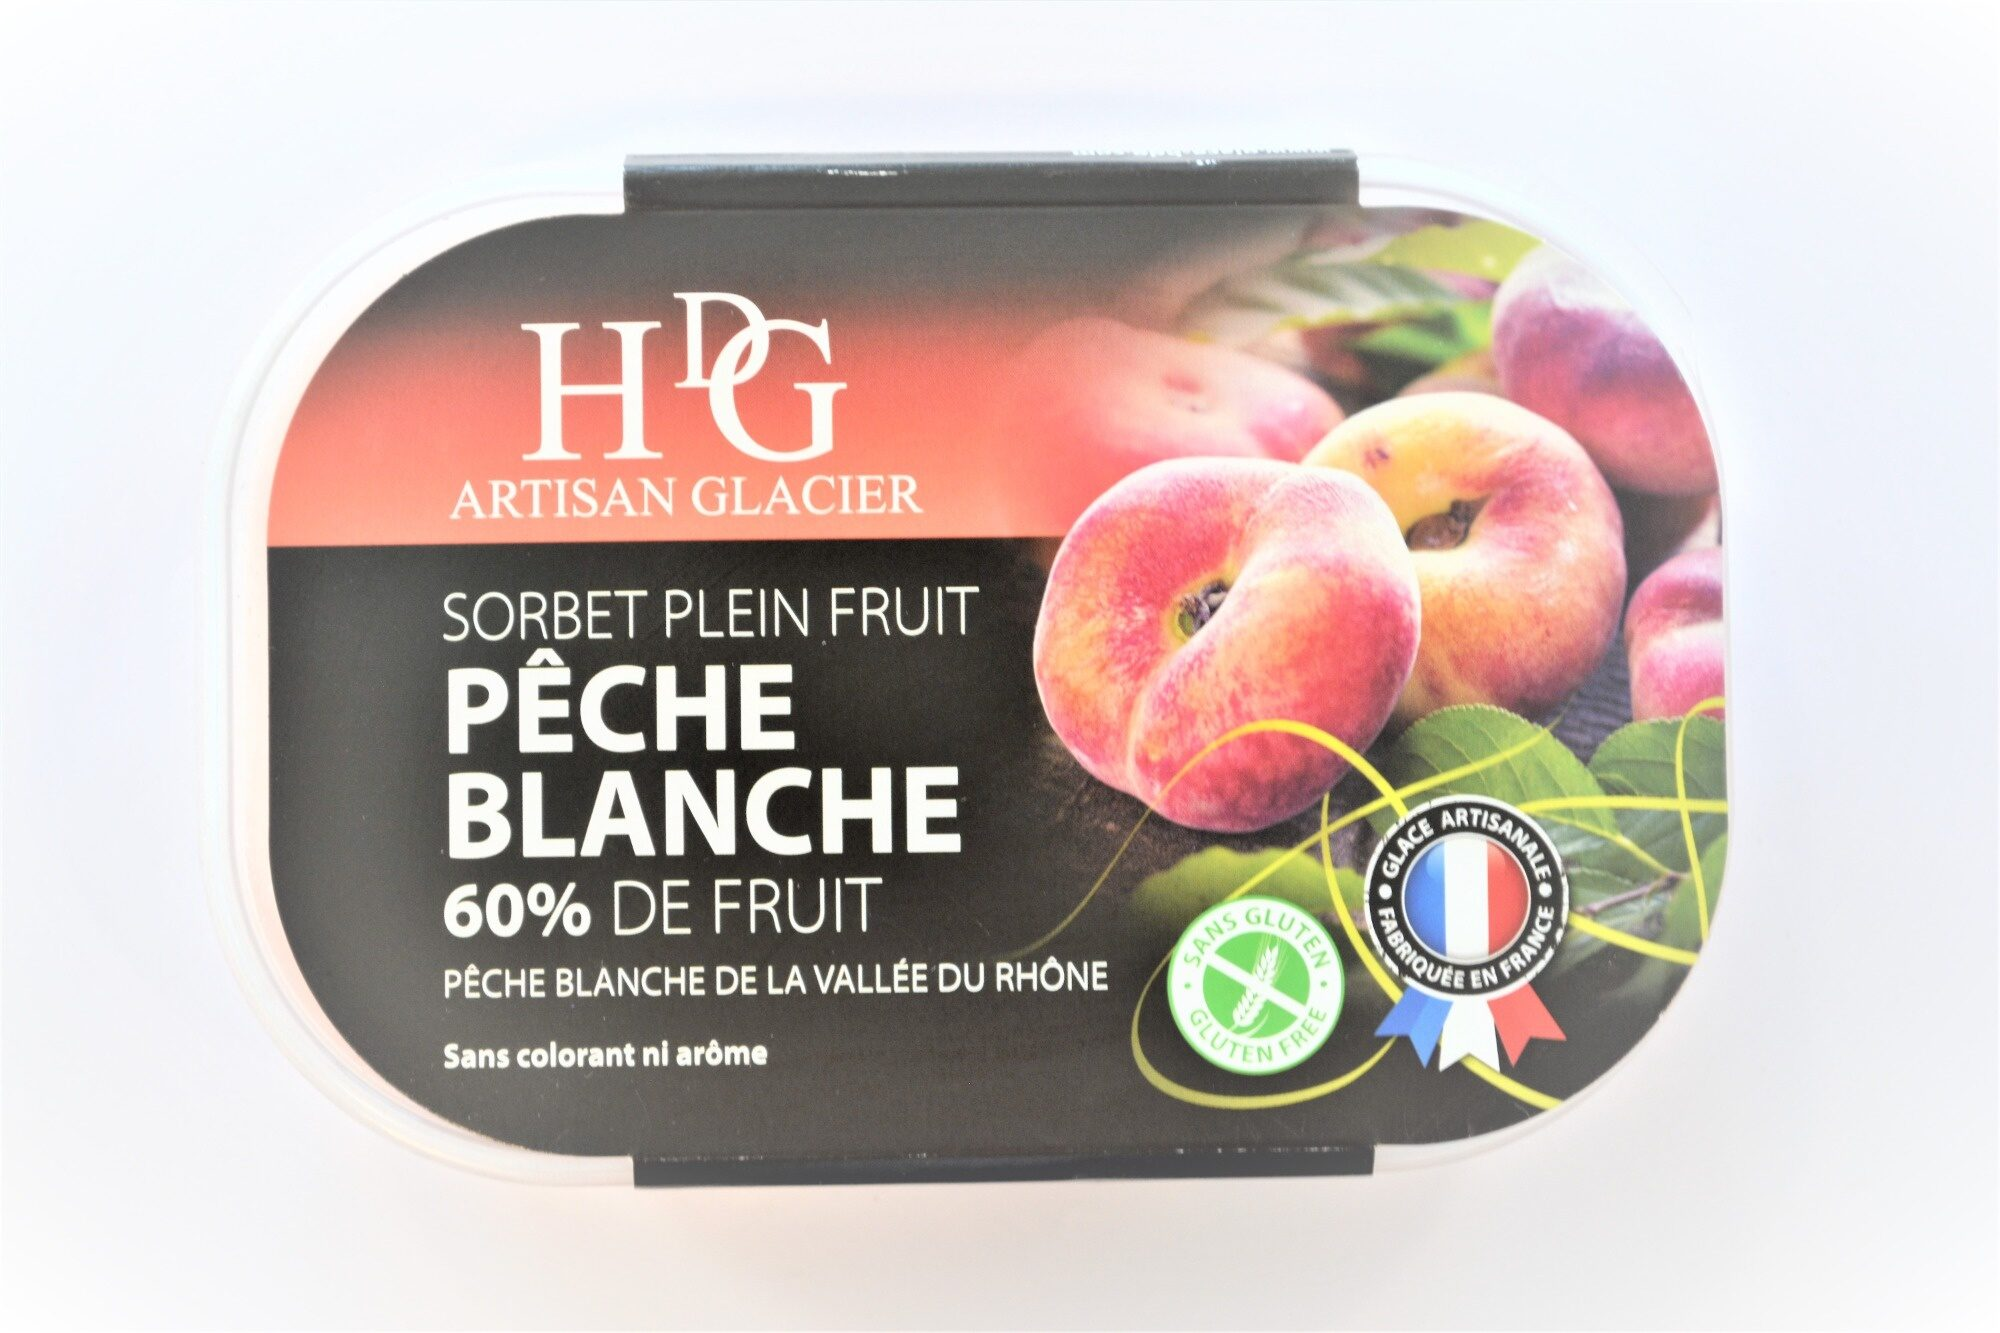 Sorbet plein fruit PÊCHE BLANCHE, 60% de fruit - Product